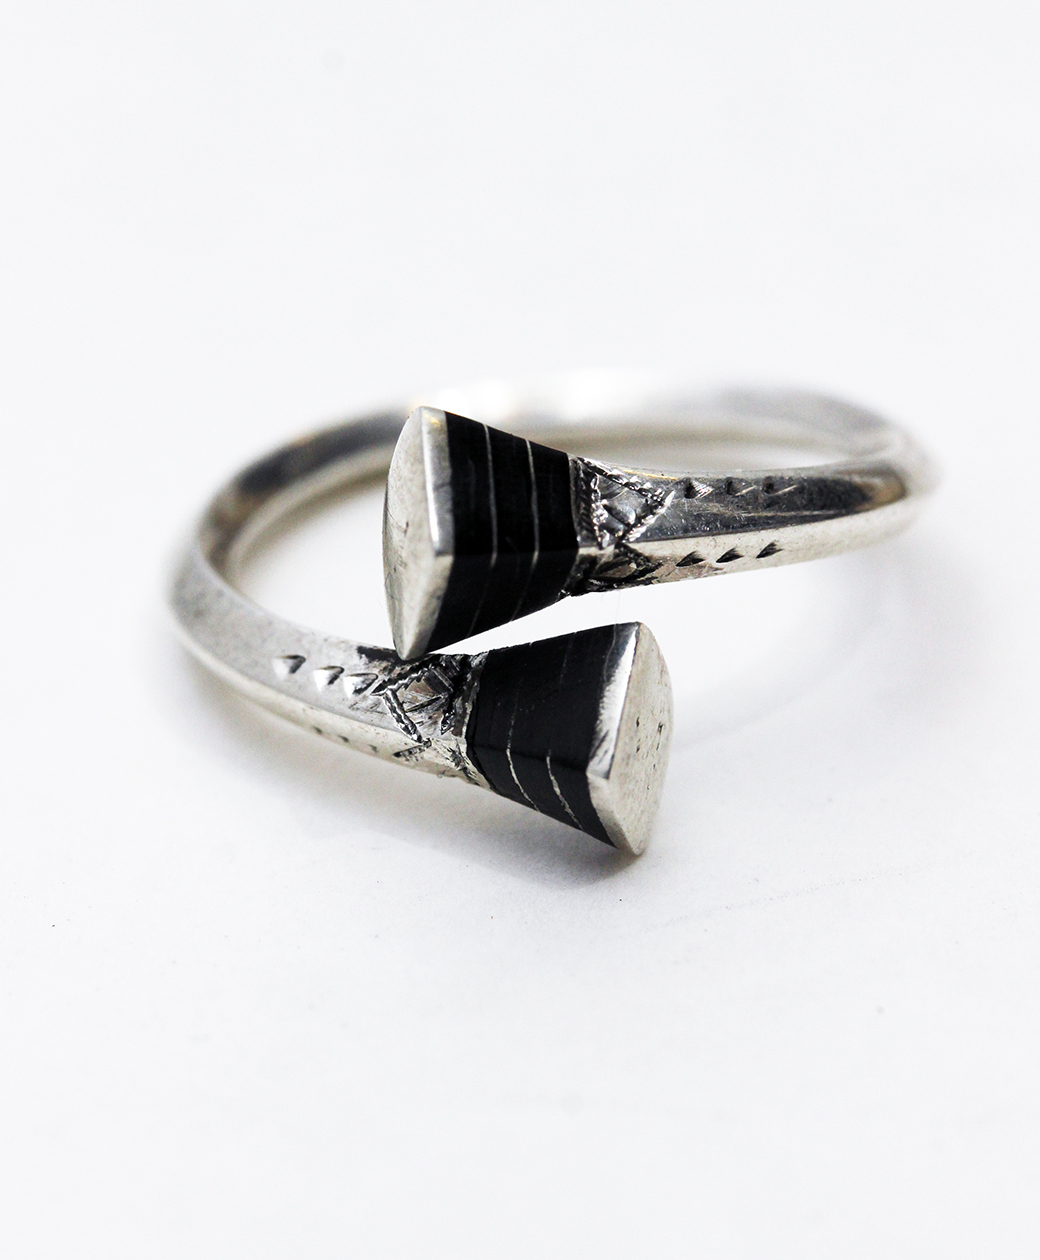 TUAREG SILVER JEWELRY SQUARE END RING